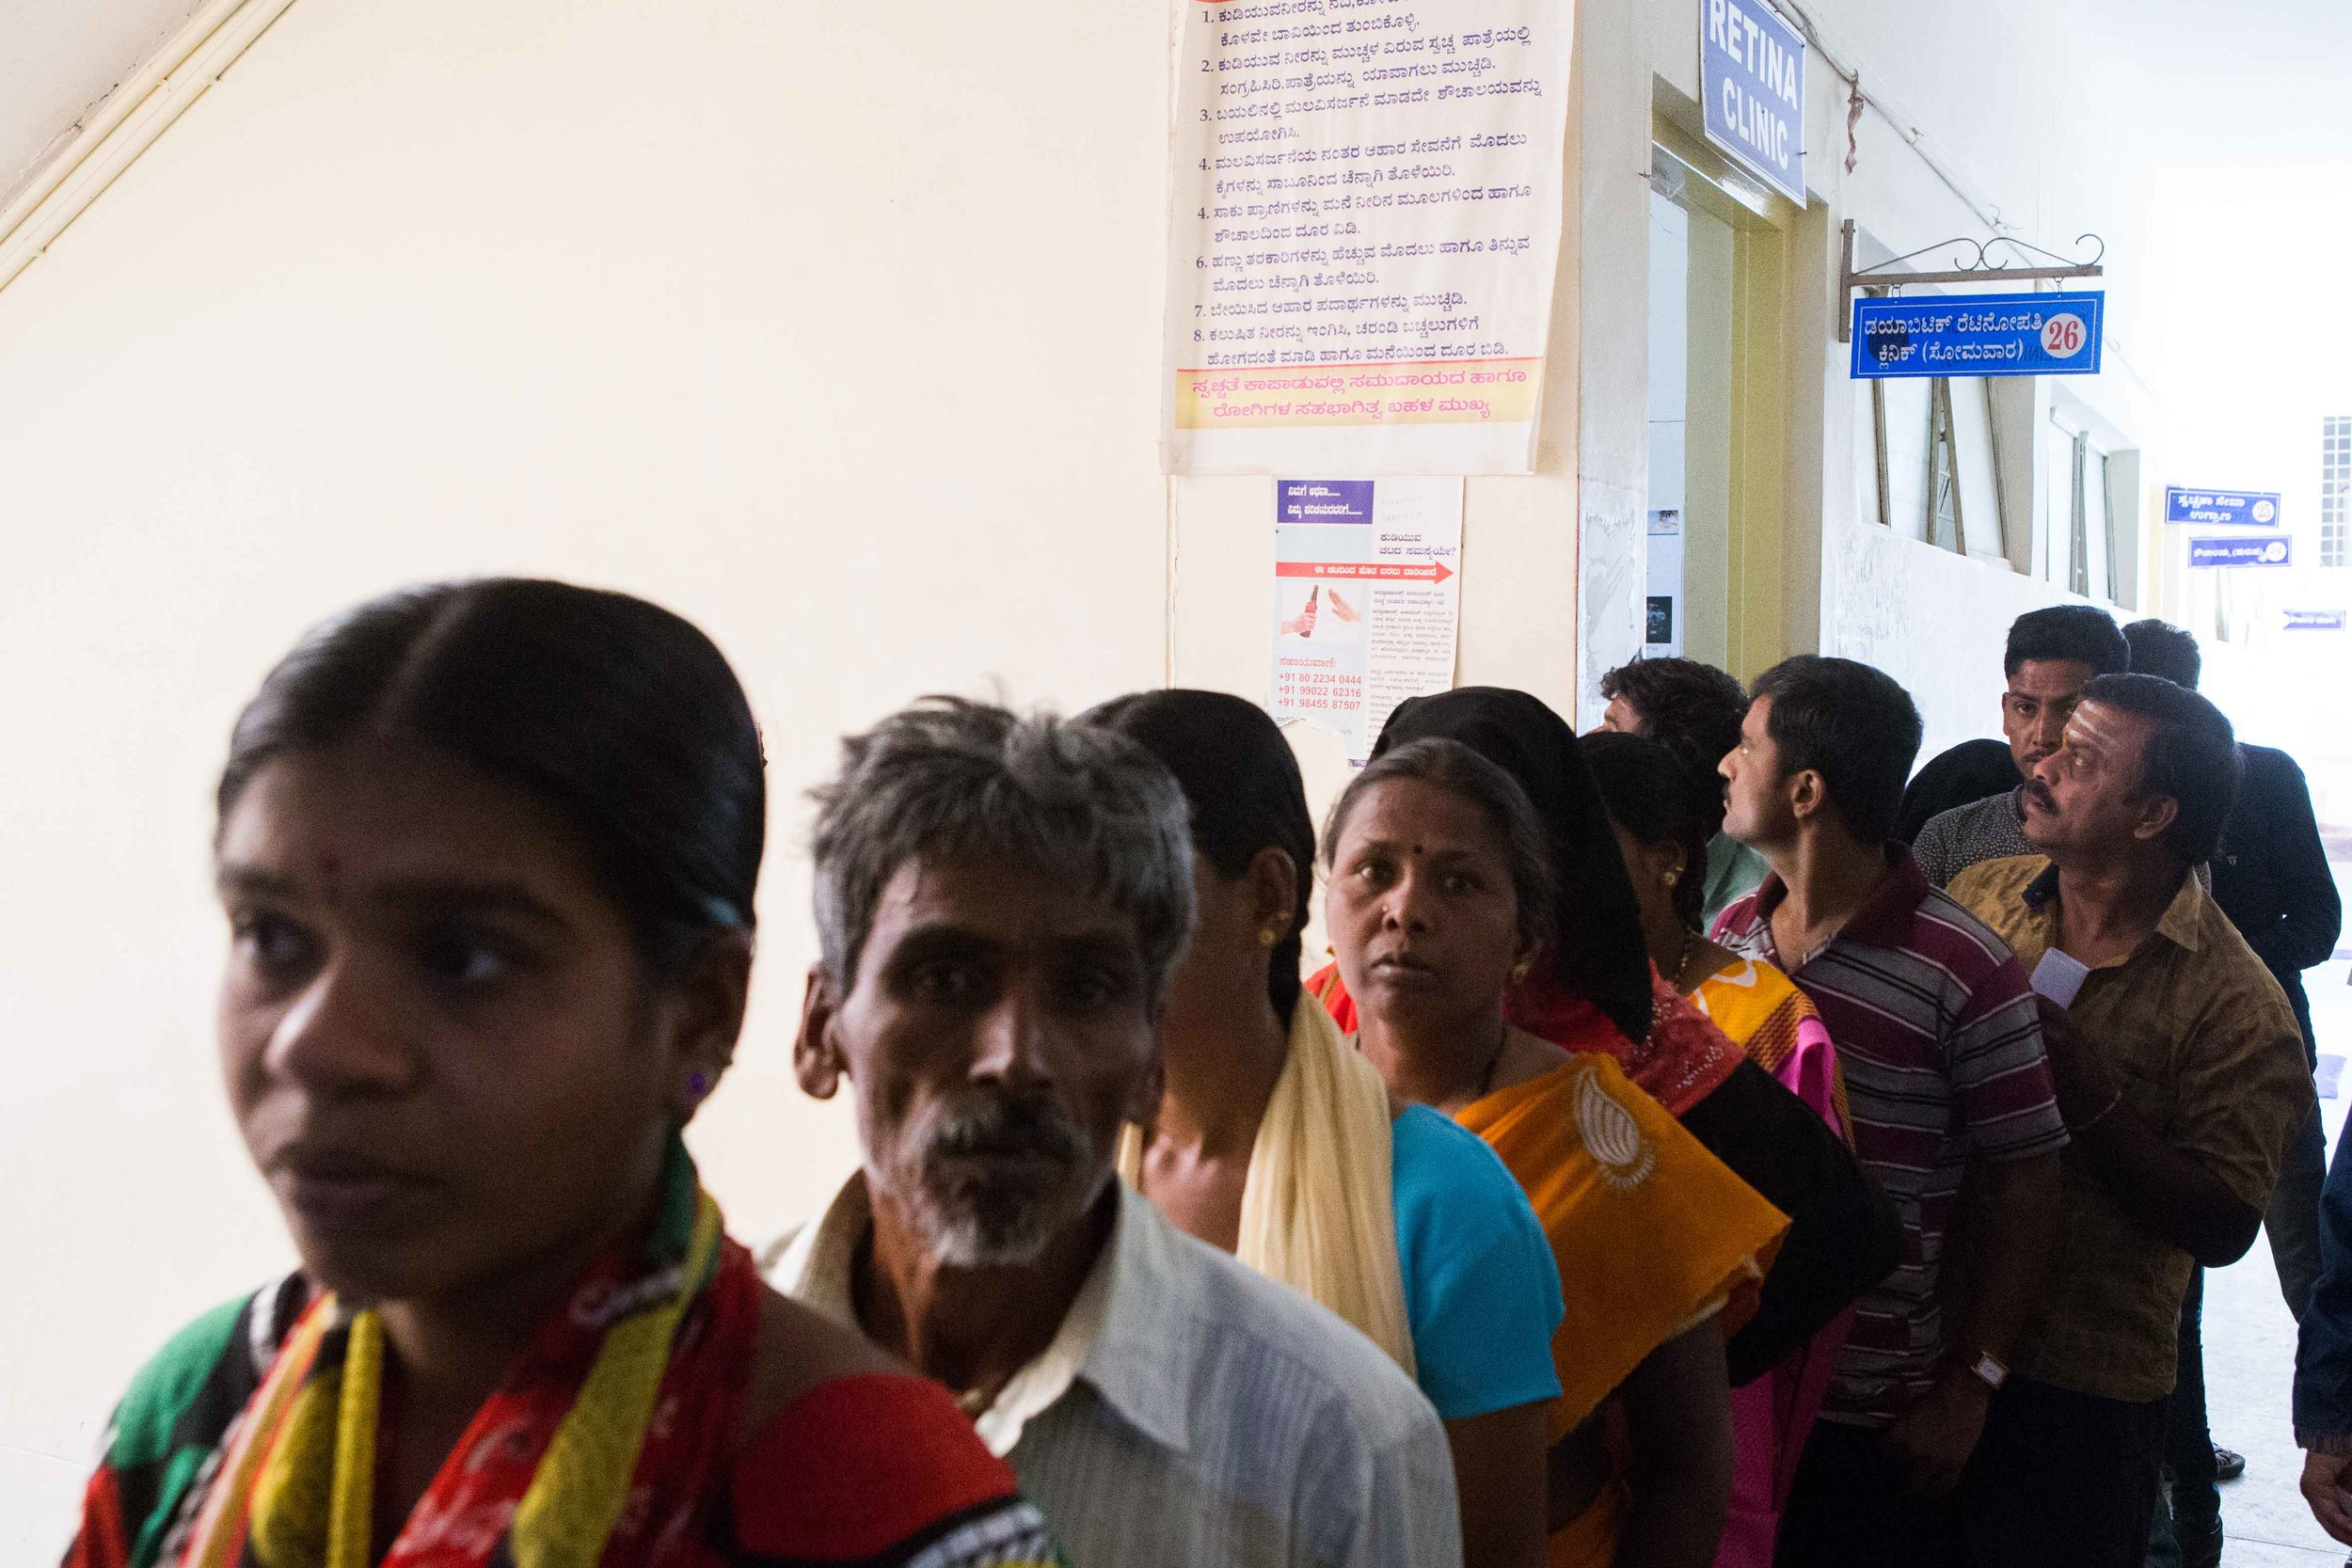 People queing up for having their eyes checked at the retina clinic. District Hospital Tumkur, karnataka